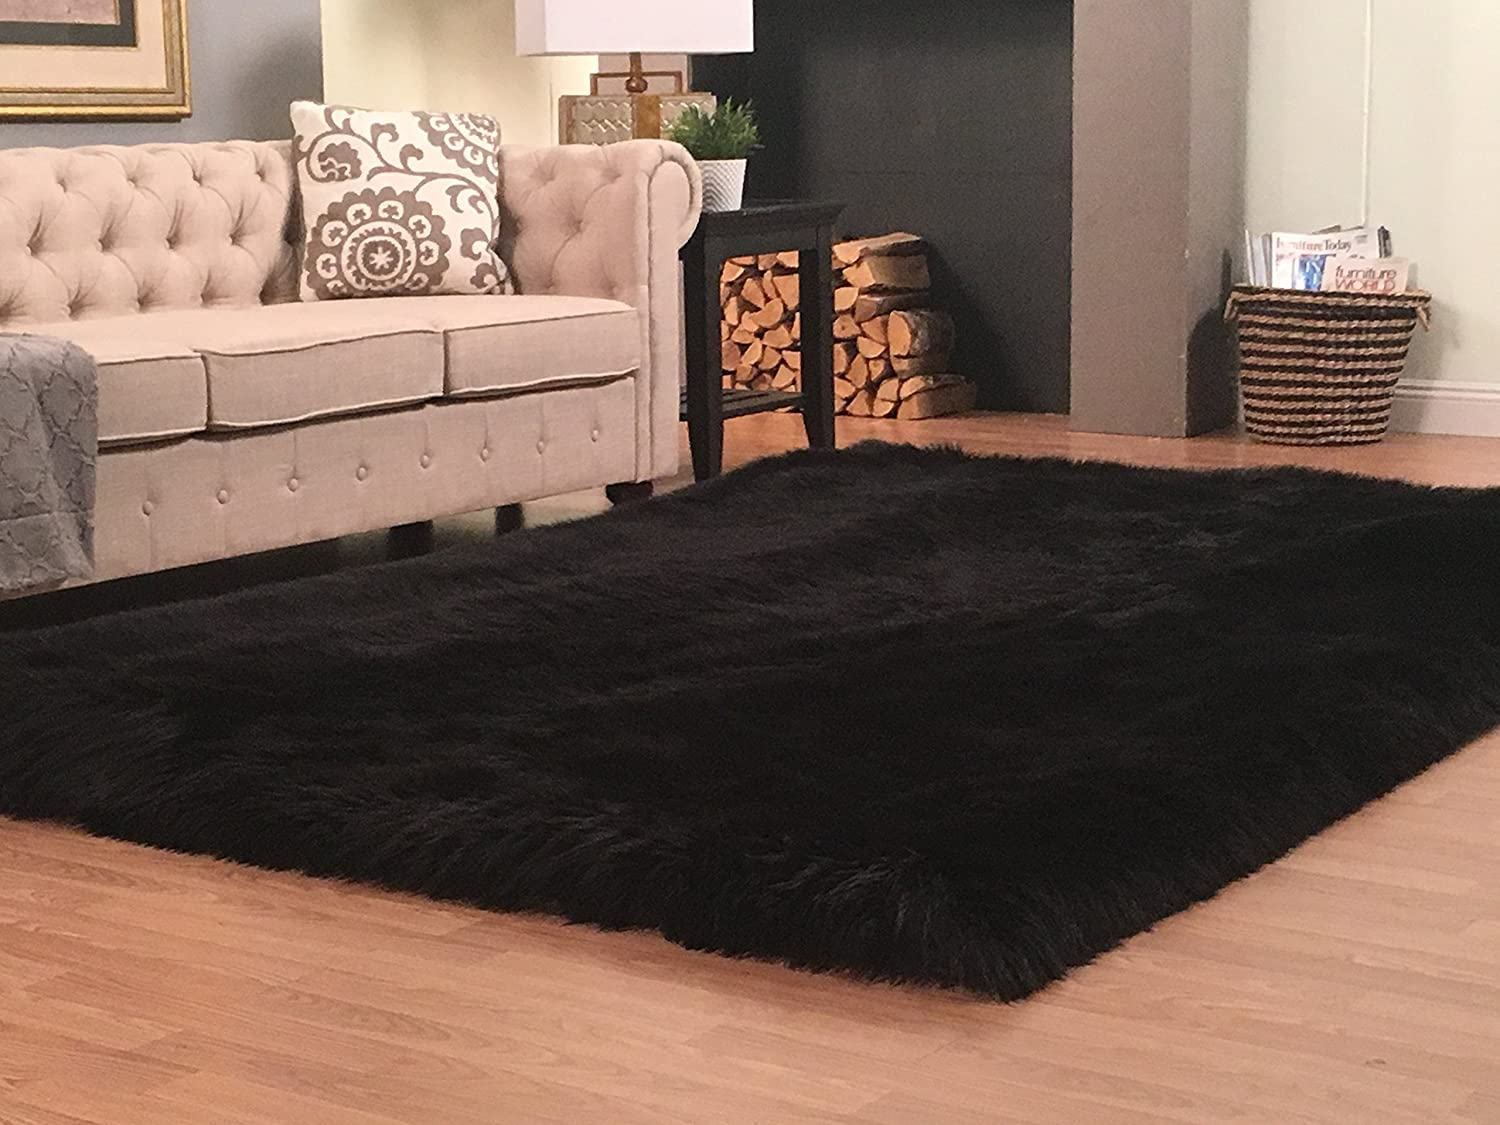 Max 54% OFF LAMBZY '' Lena Collection Faux Challenge the lowest price Hypoaller Super Soft Sheepskin